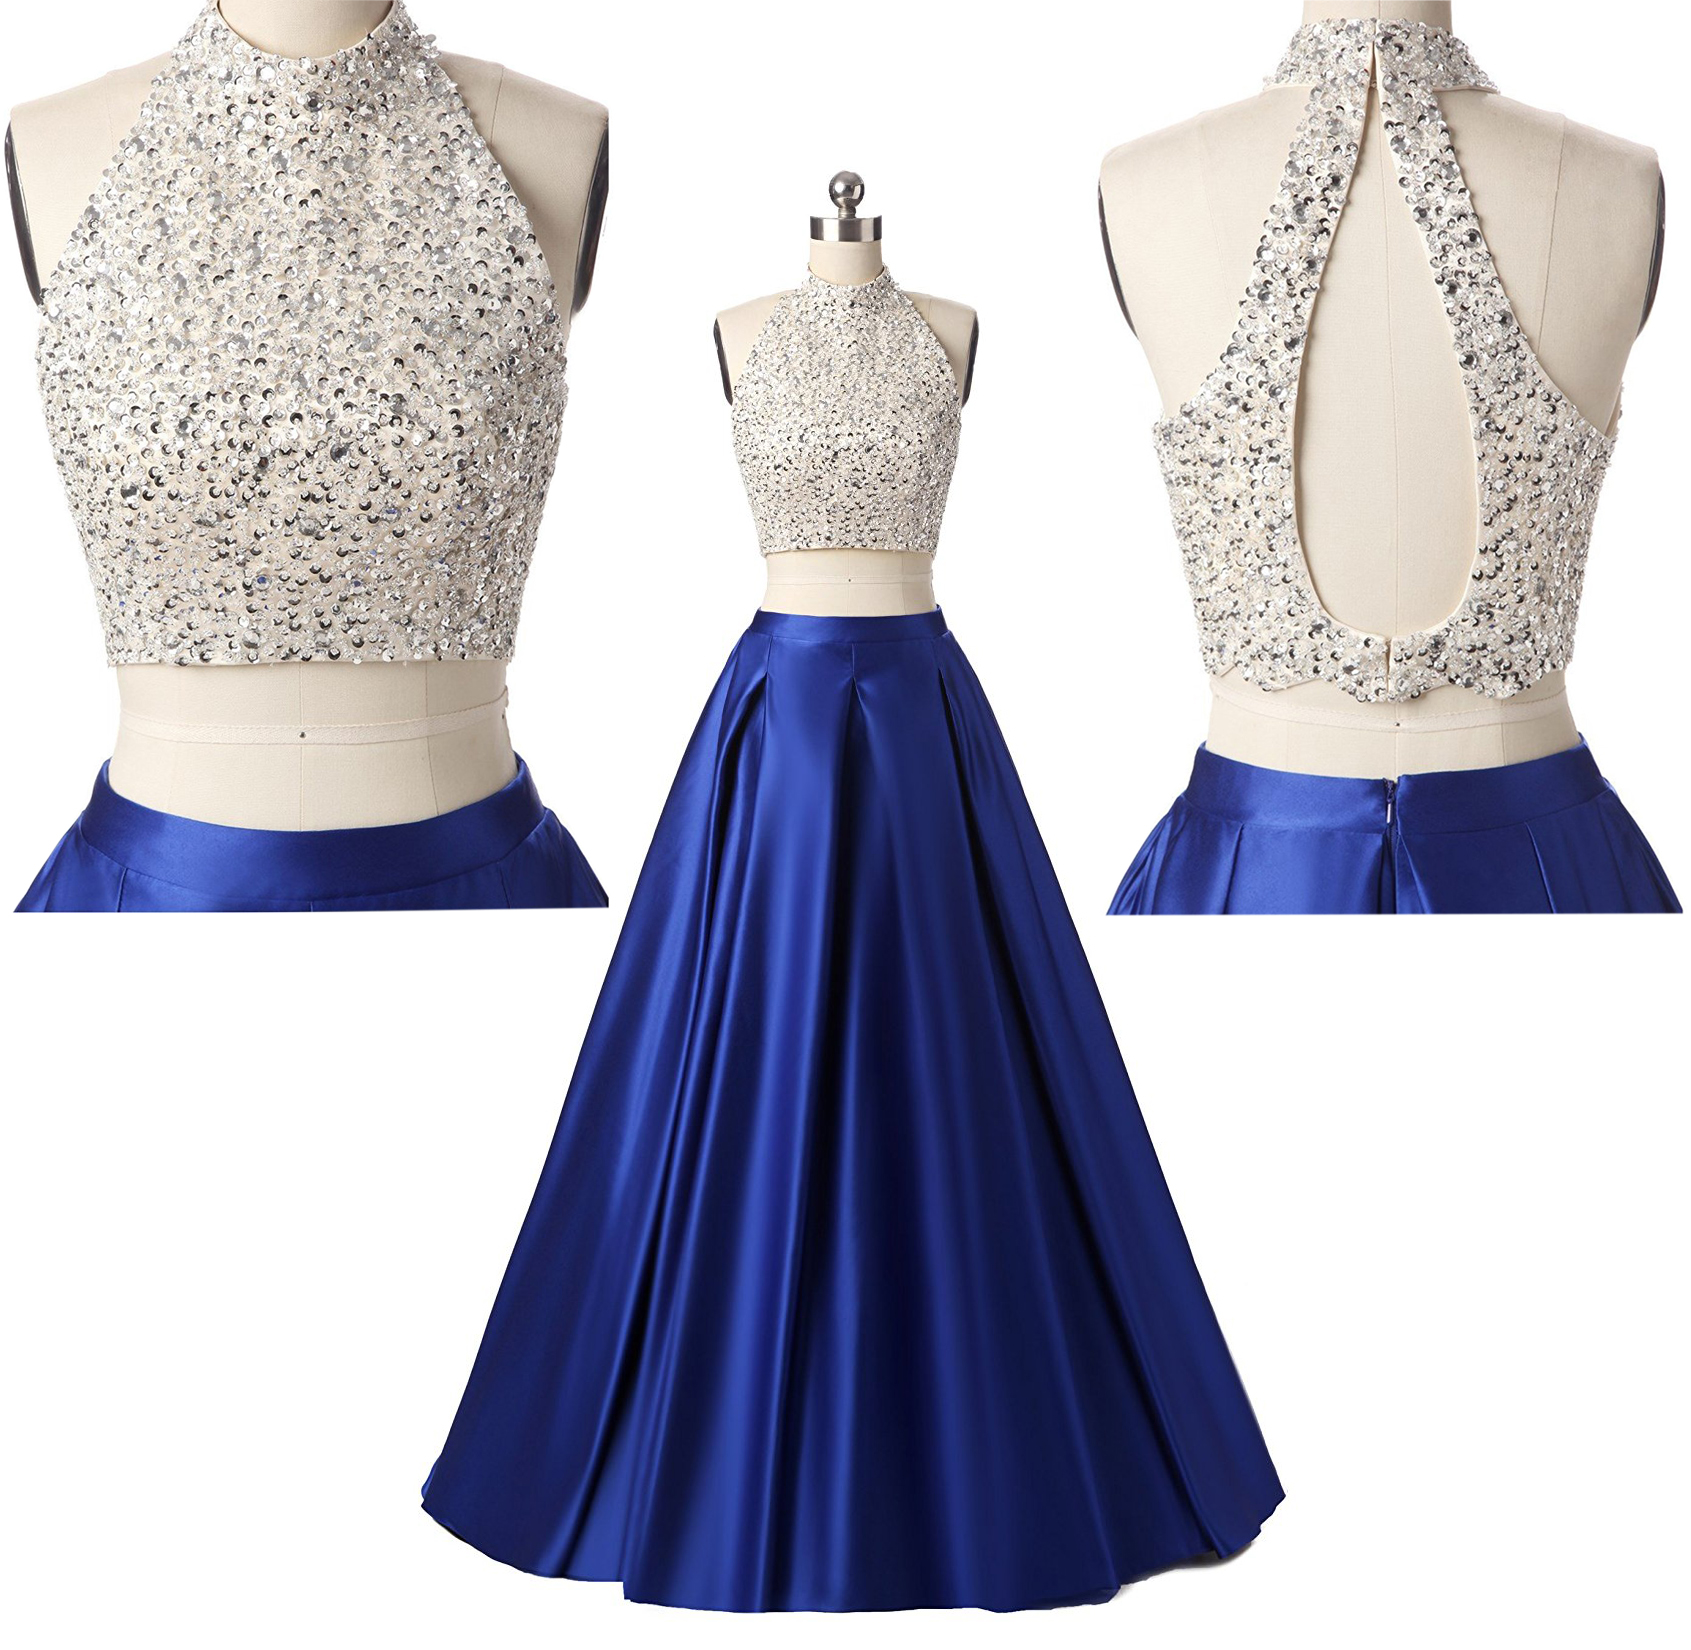 Royal Blue Two piece prom dress,high neck prom dress,evening dress,prom  dress,prom dresses long,2017 prom dresses,two piece prom dress plus size  sold ...